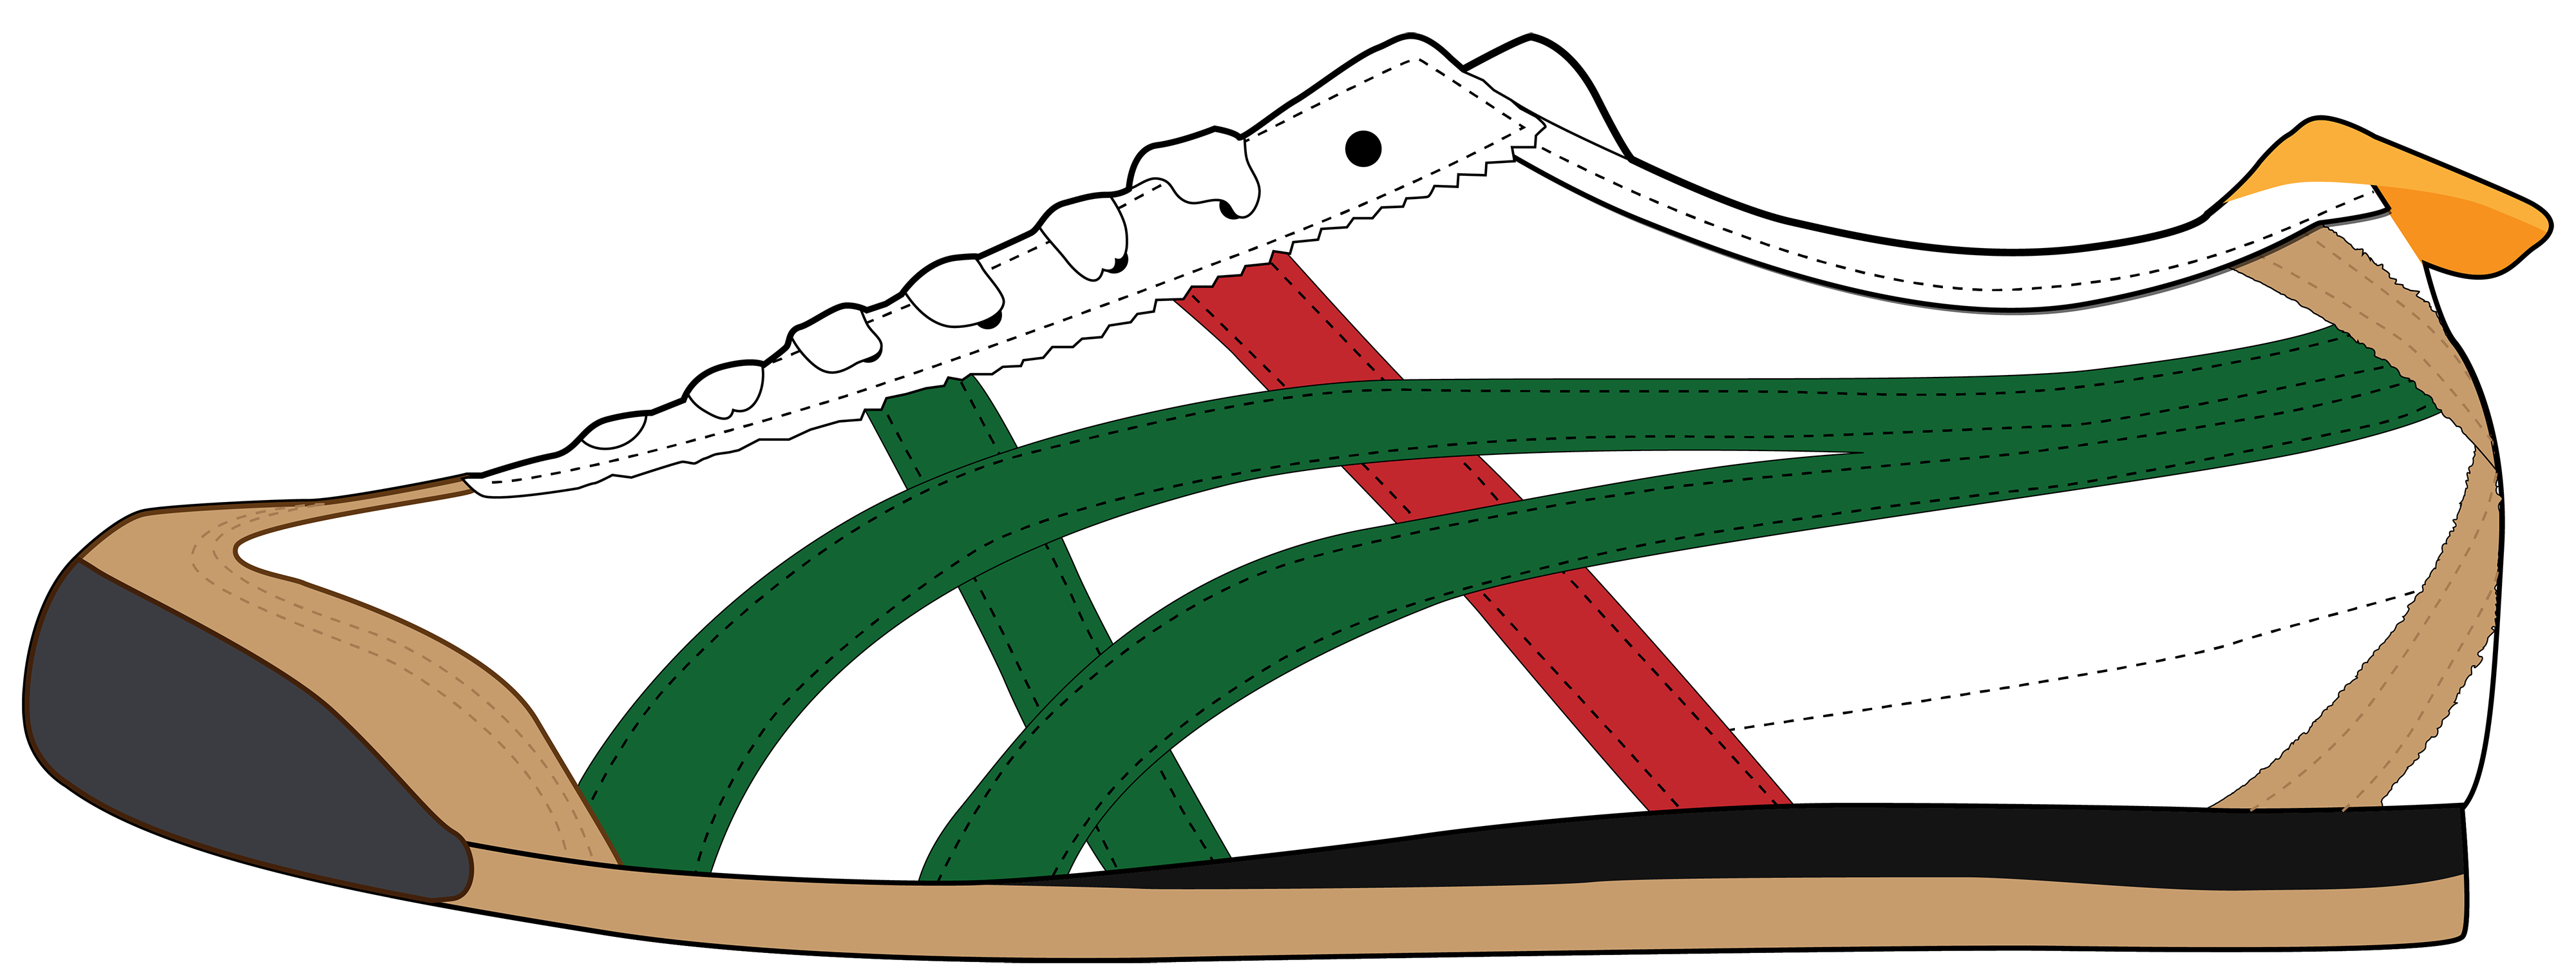 Jacket clipart shoe. Men sport png best